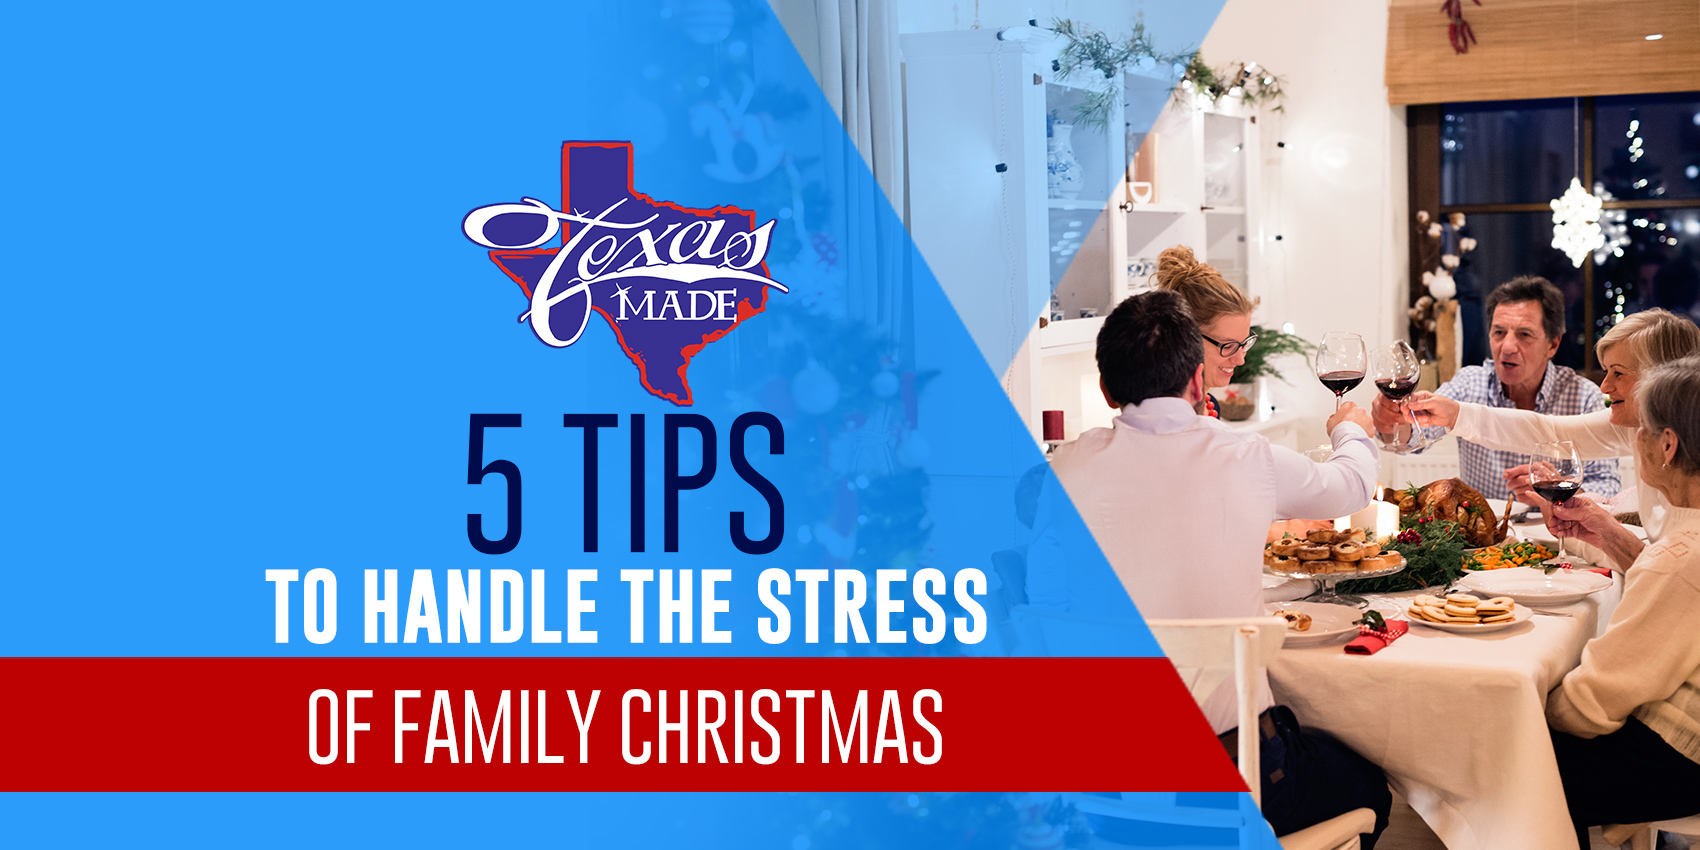 5 Tips to Handle the Stress of Family Christmas